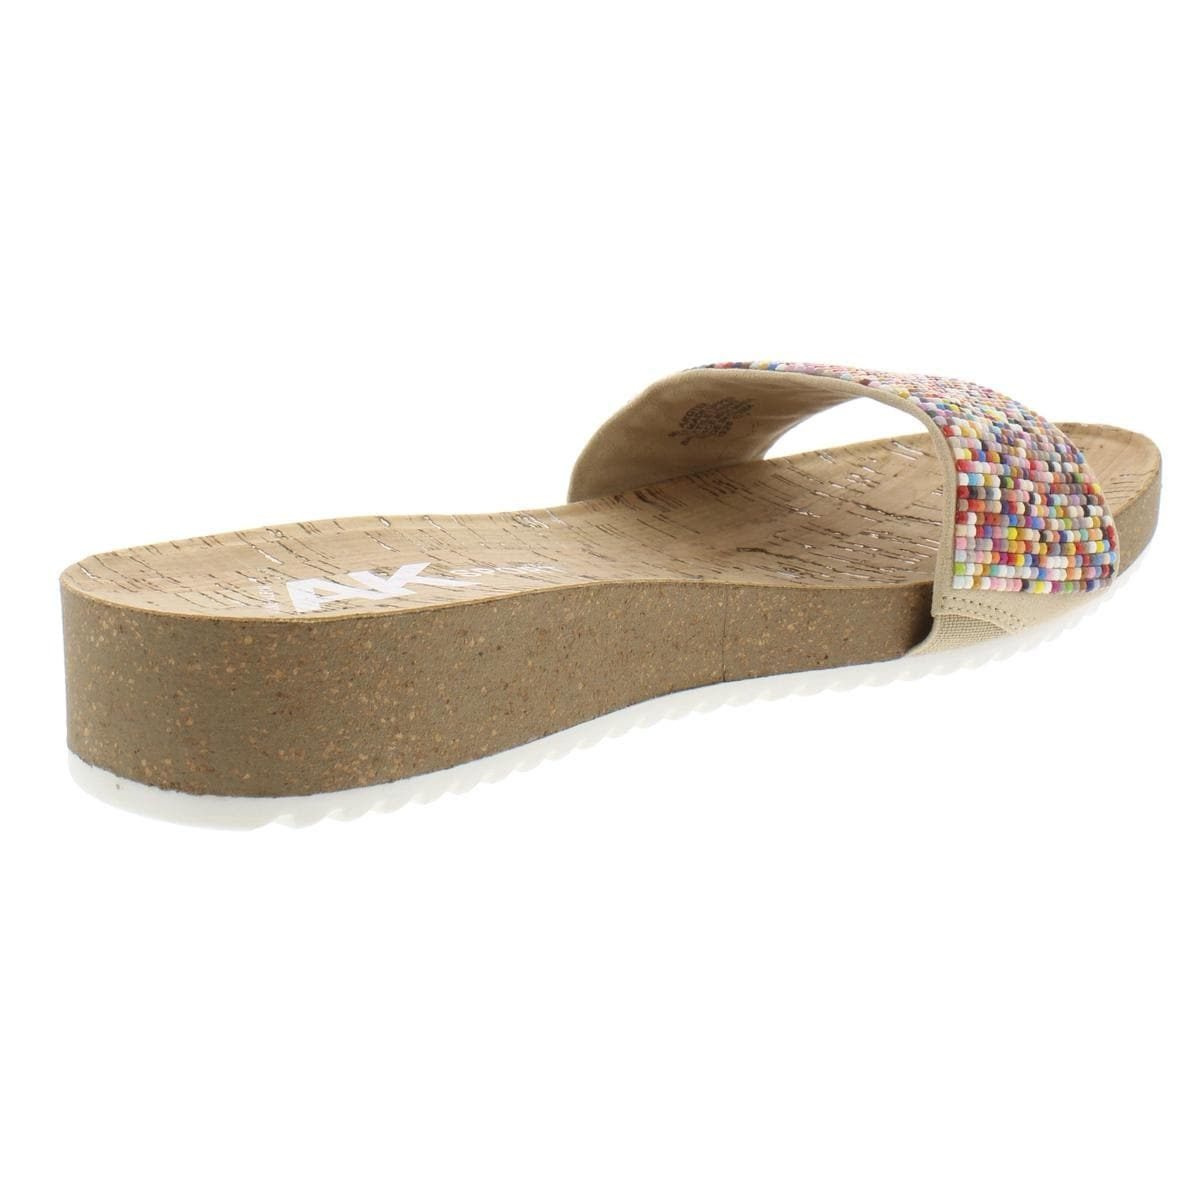 0c7c0dd00293 Shop Anne Klein Sport Womens Qtee Wedge Sandals Beaded Slide - Free  Shipping On Orders Over  45 - Overstock - 27619876